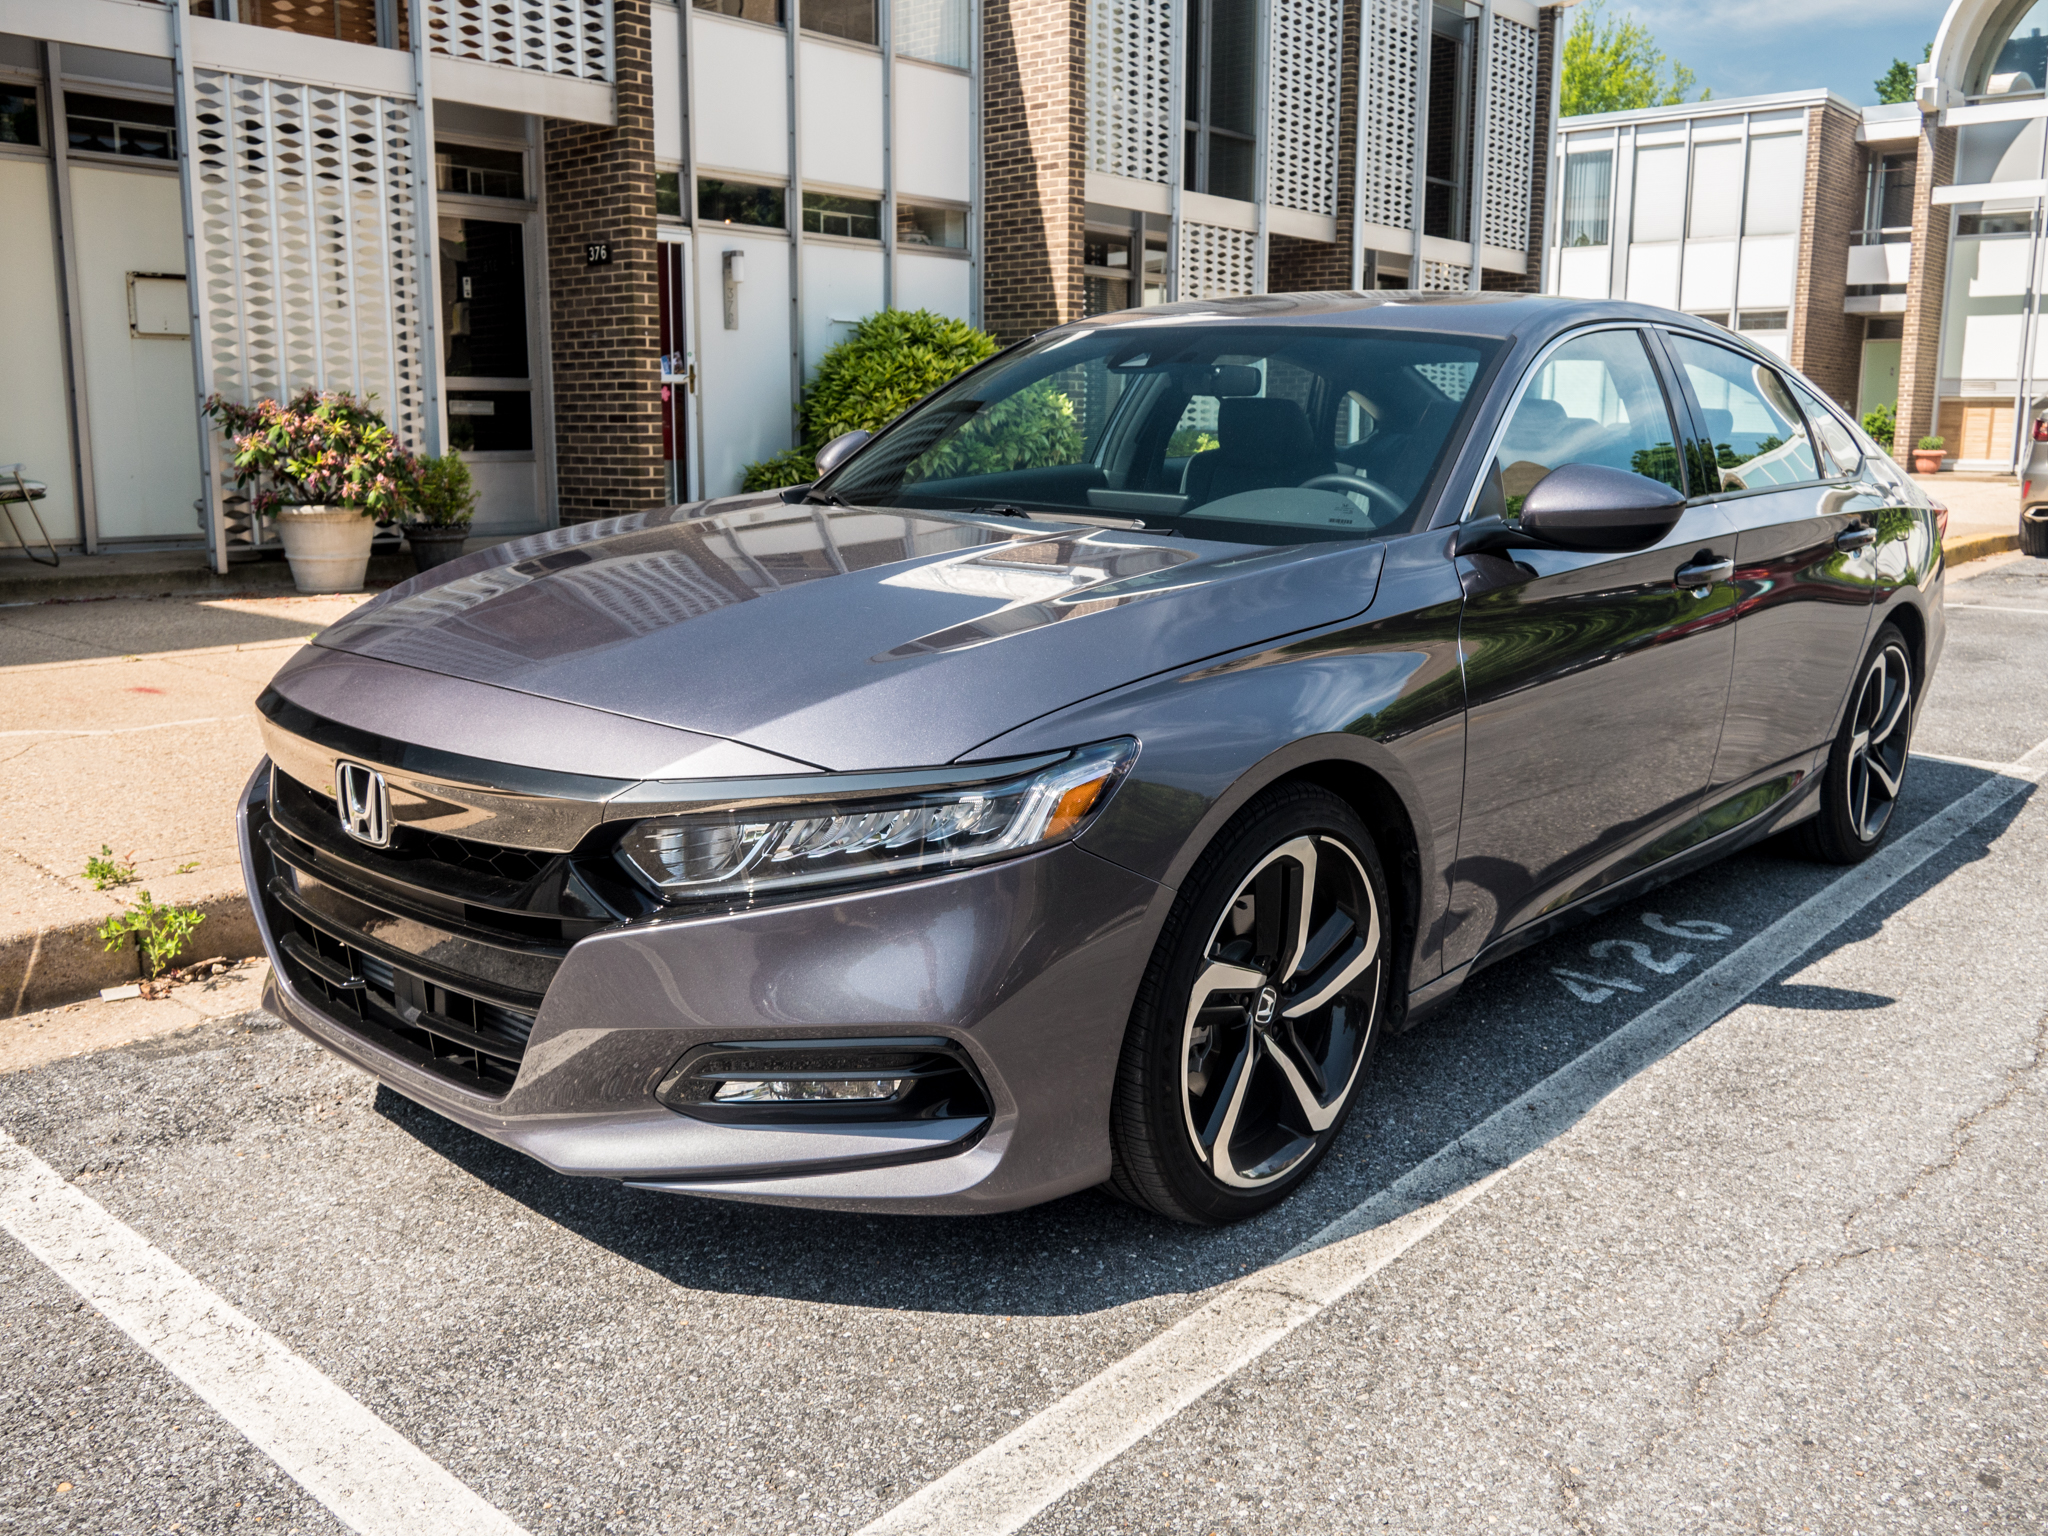 2018 Honda Accord Sport Enlarge